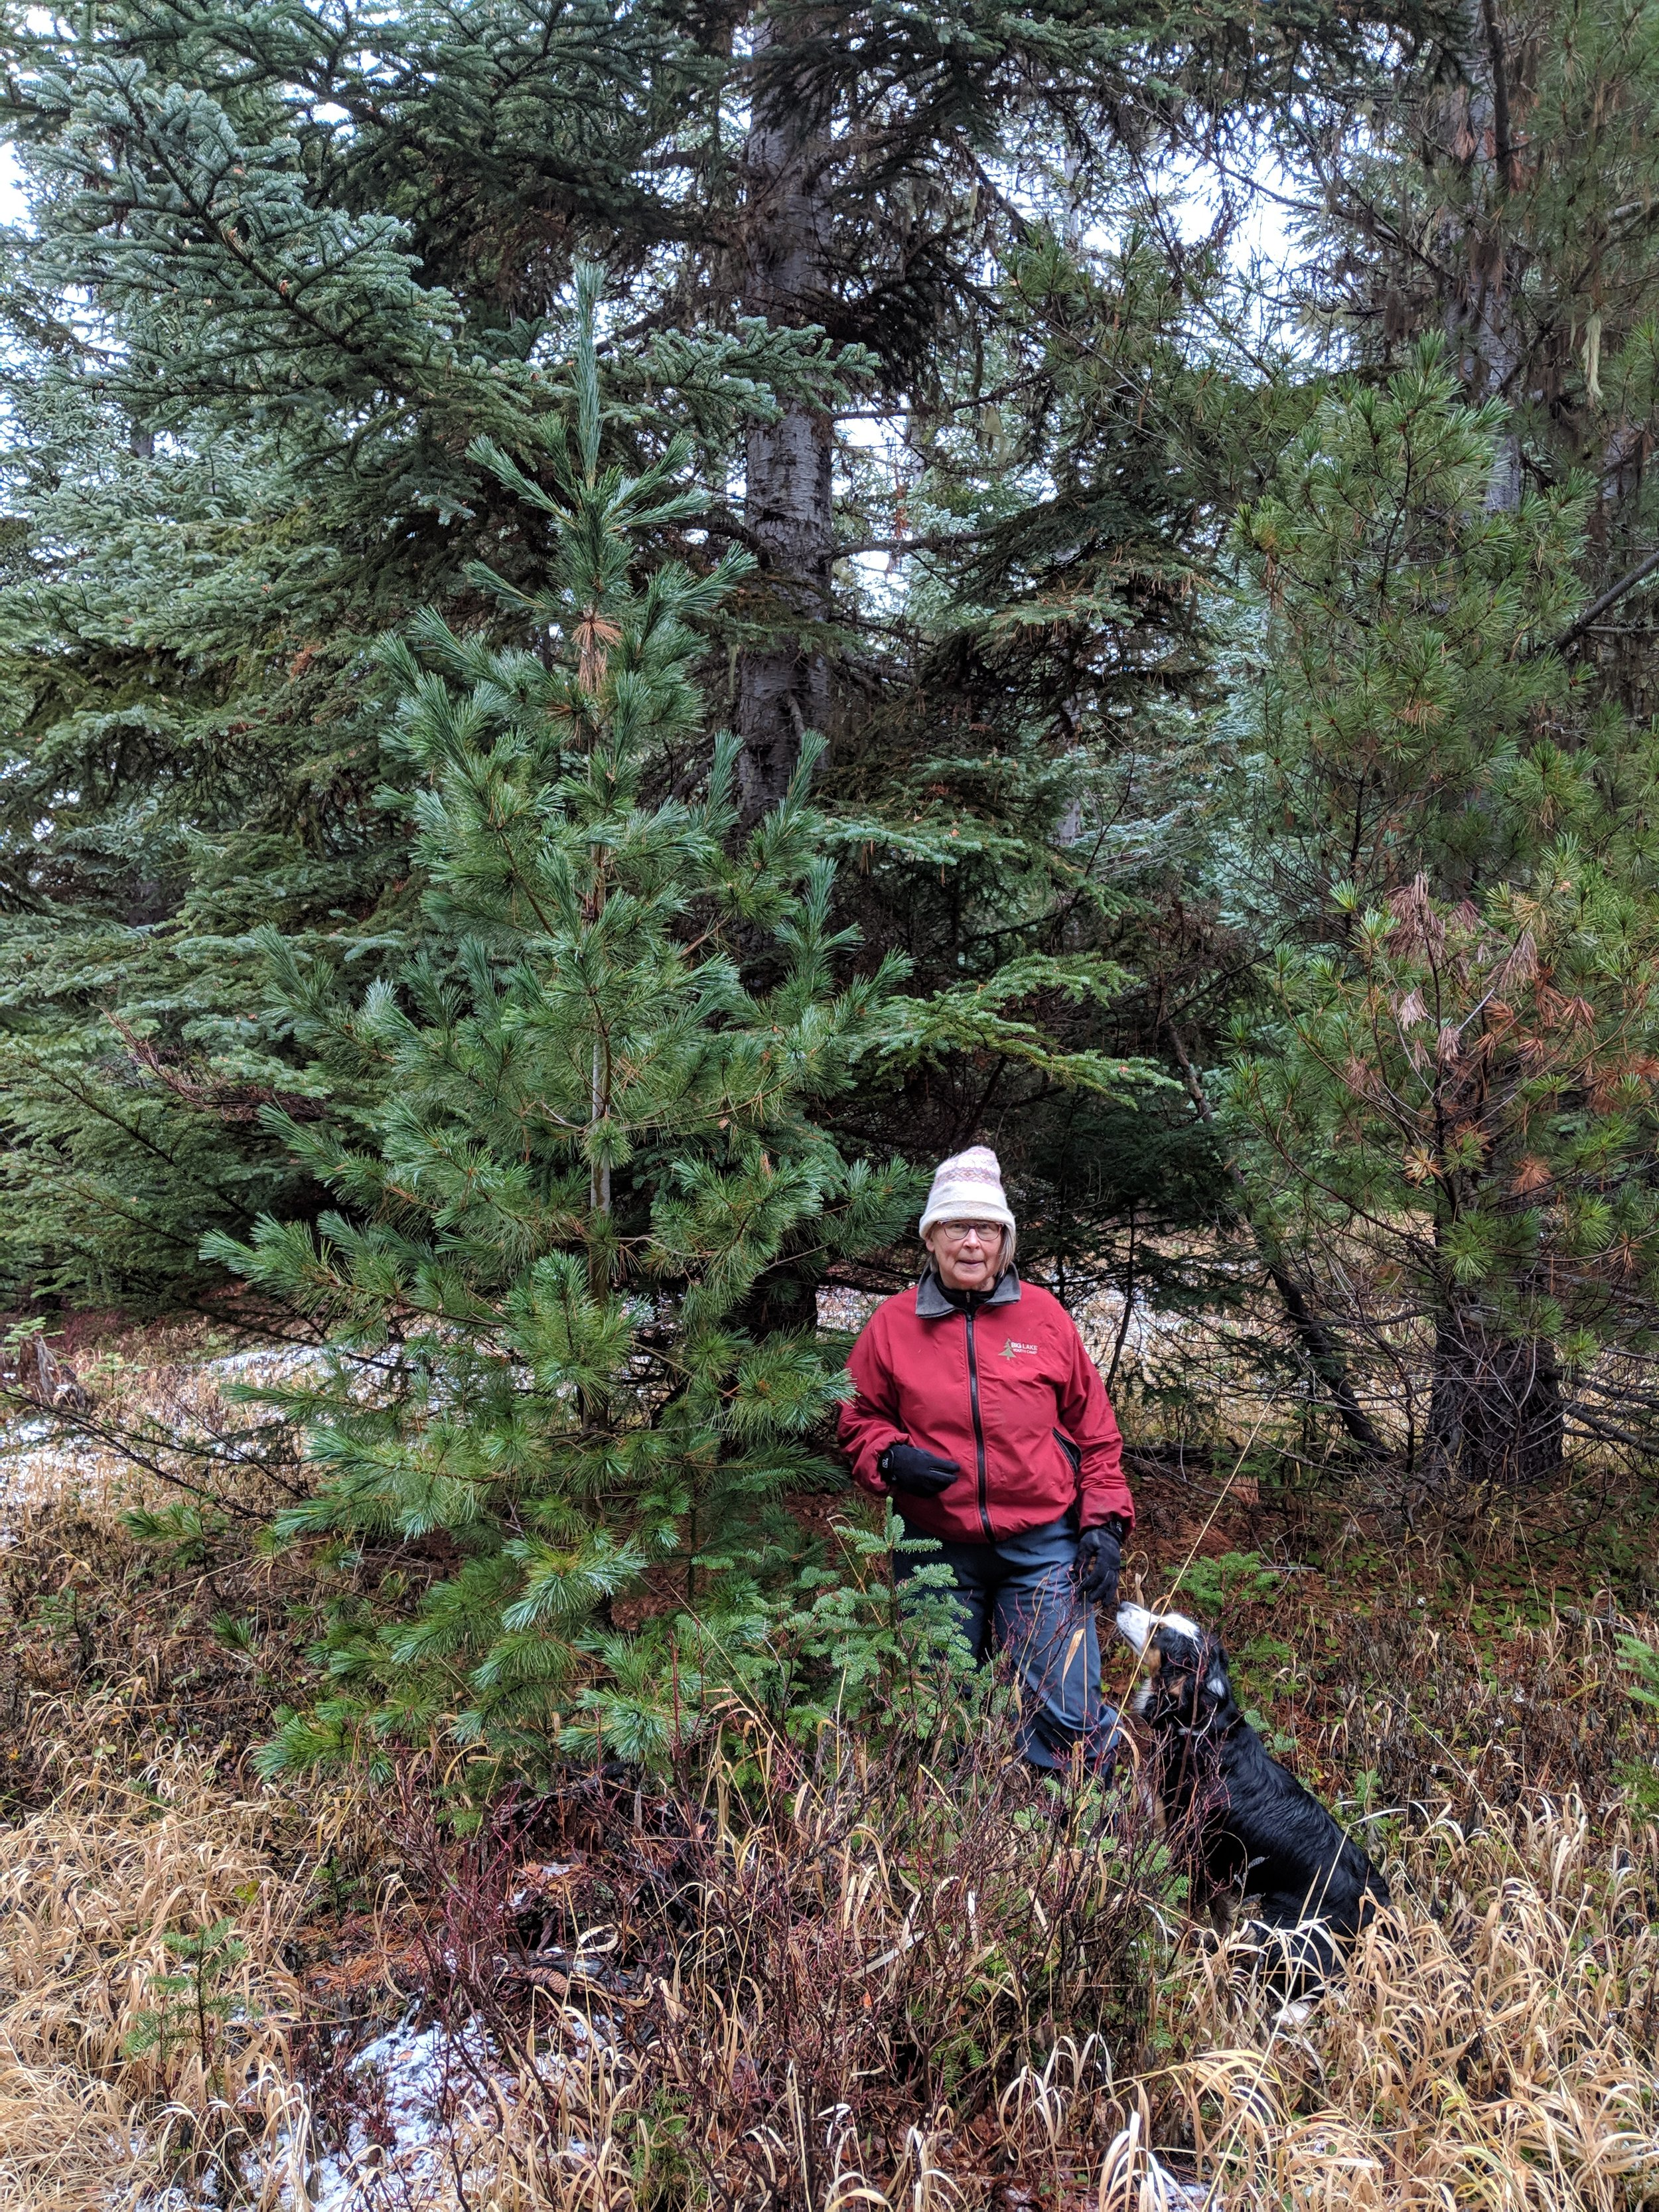 John's wife, Karin and the her dog Poppy, and of course, the tree.